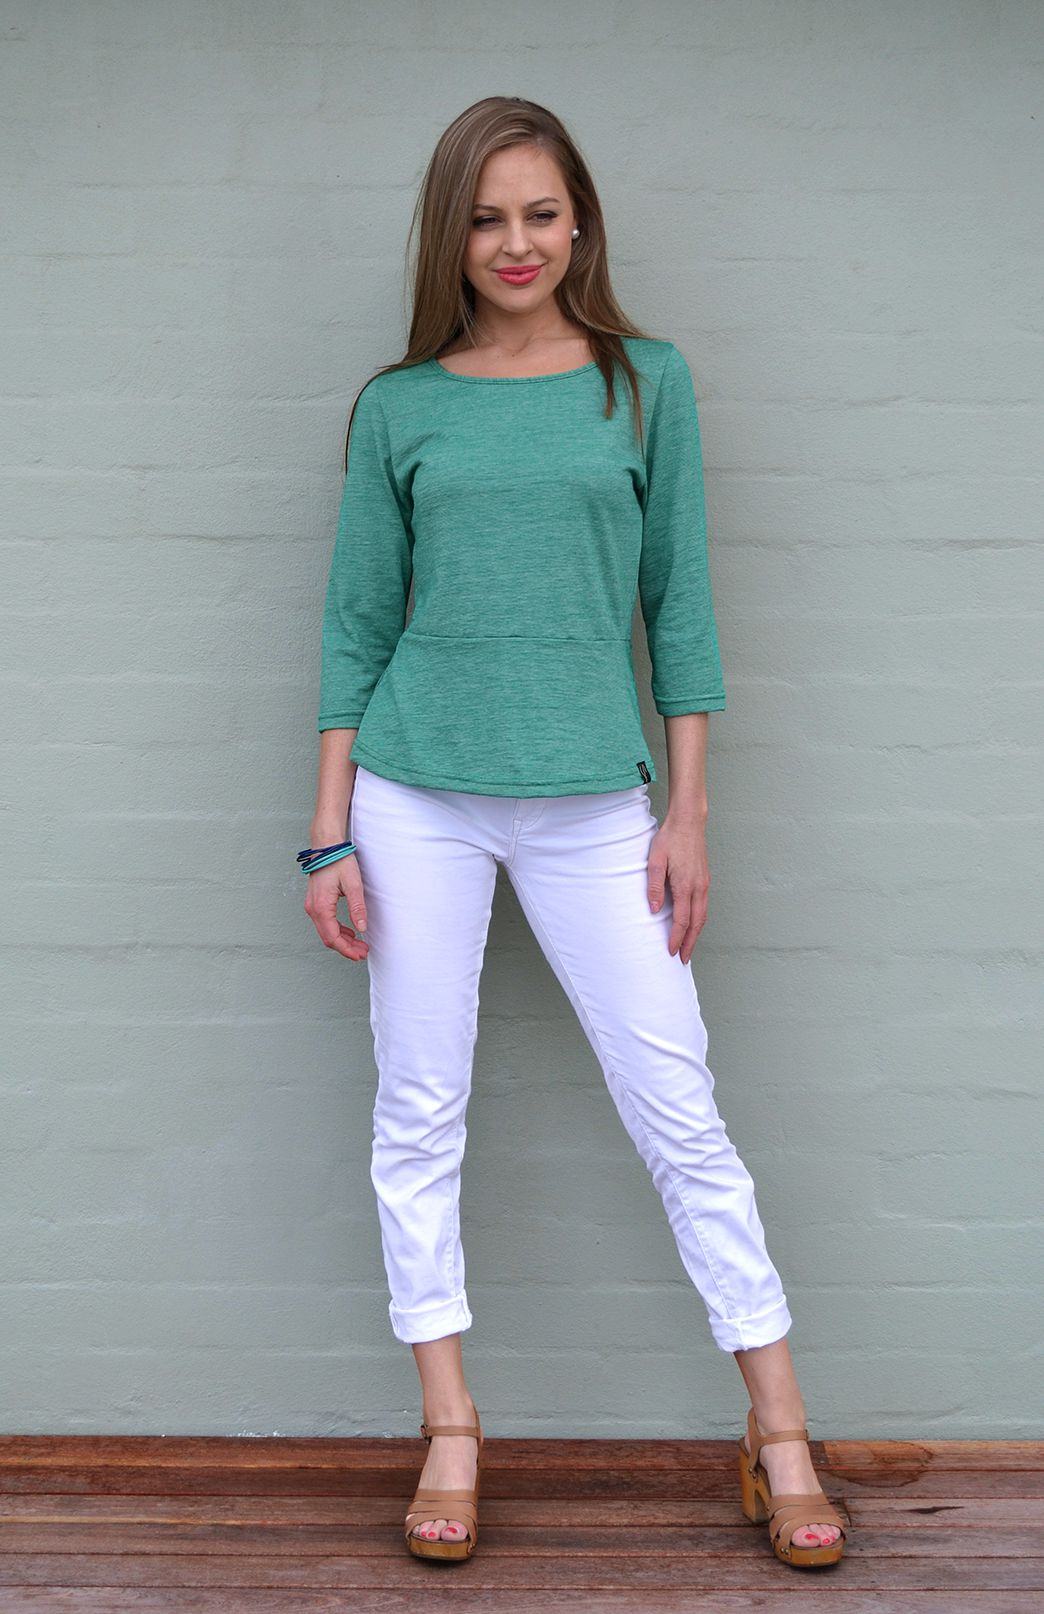 Peplum Top - 3/4 Sleeve - Women's Green Pinstripe Wool Cotton Blend 3/4 Sleeve Spring Top - Smitten Merino Tasmania Australia